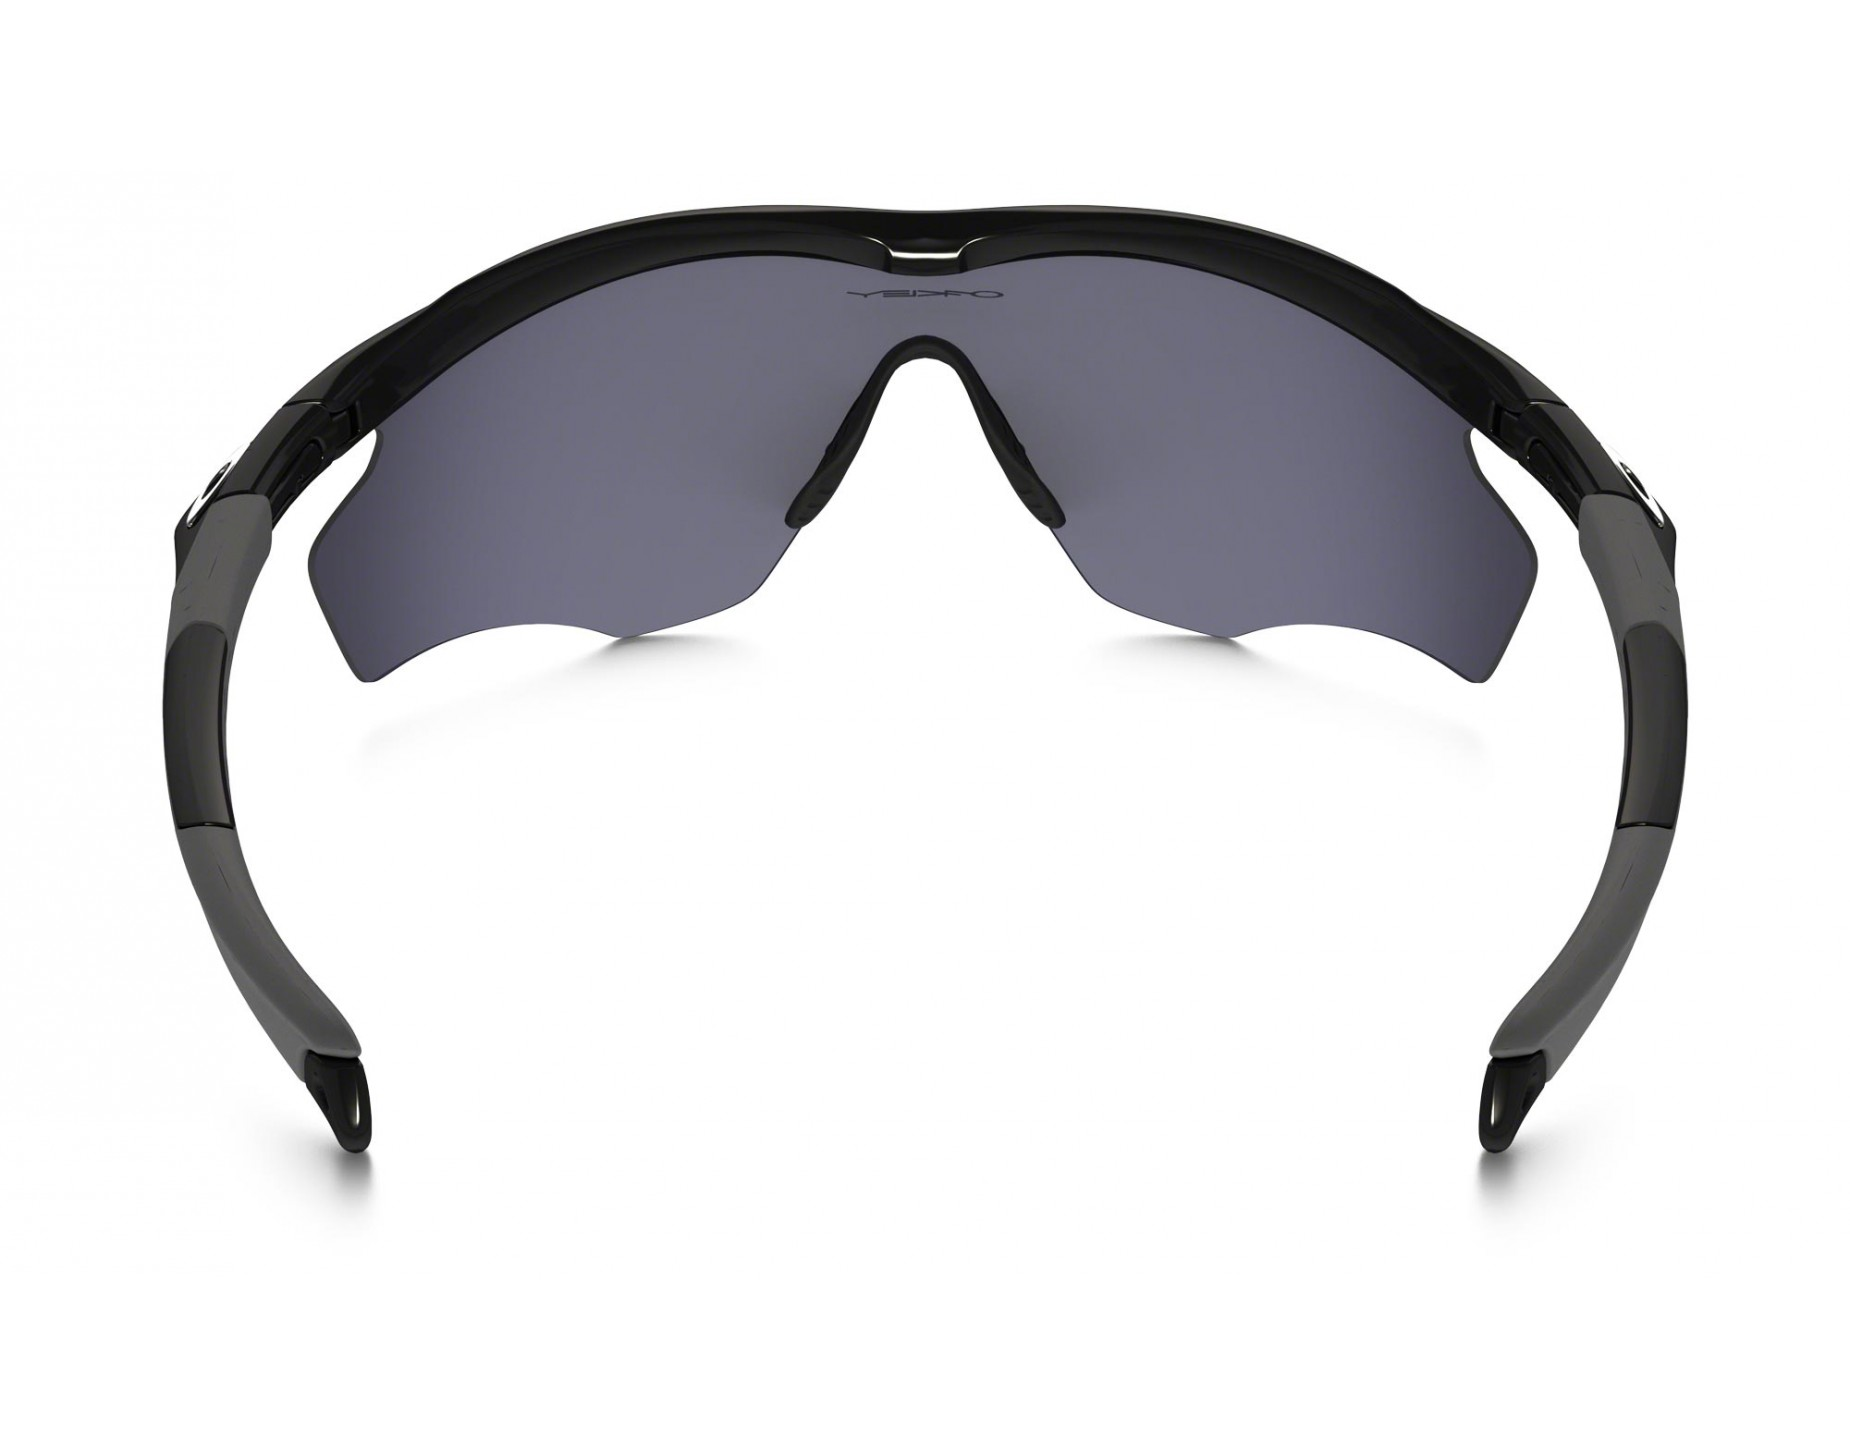 Oakley M2 Frame Glasses : OAKLEY M2 FRAME XL sports glasses everything you need ...